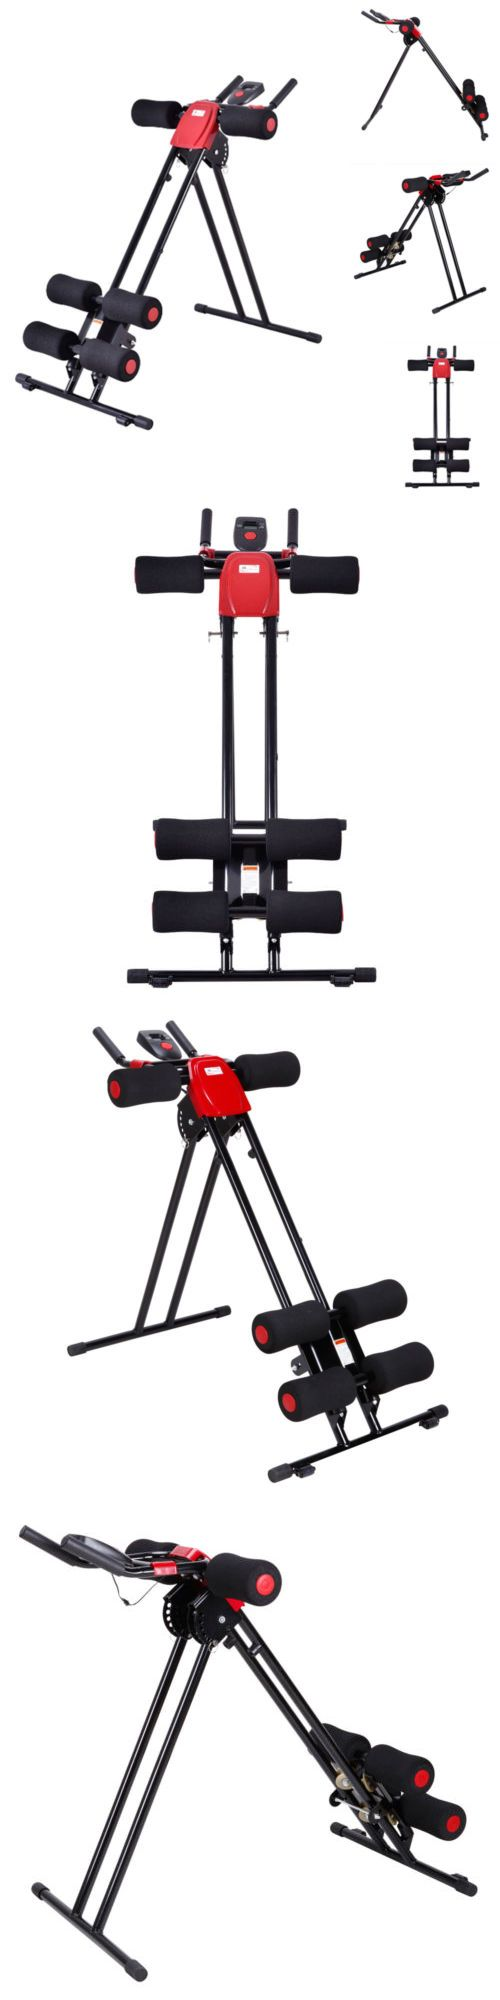 Abdominal Exercisers 15274: Finether Ab Cruncher Abdominal Trainer Glider Machine Fitness Exercise Equipment -> BUY IT NOW ONLY: $53.99 on eBay!